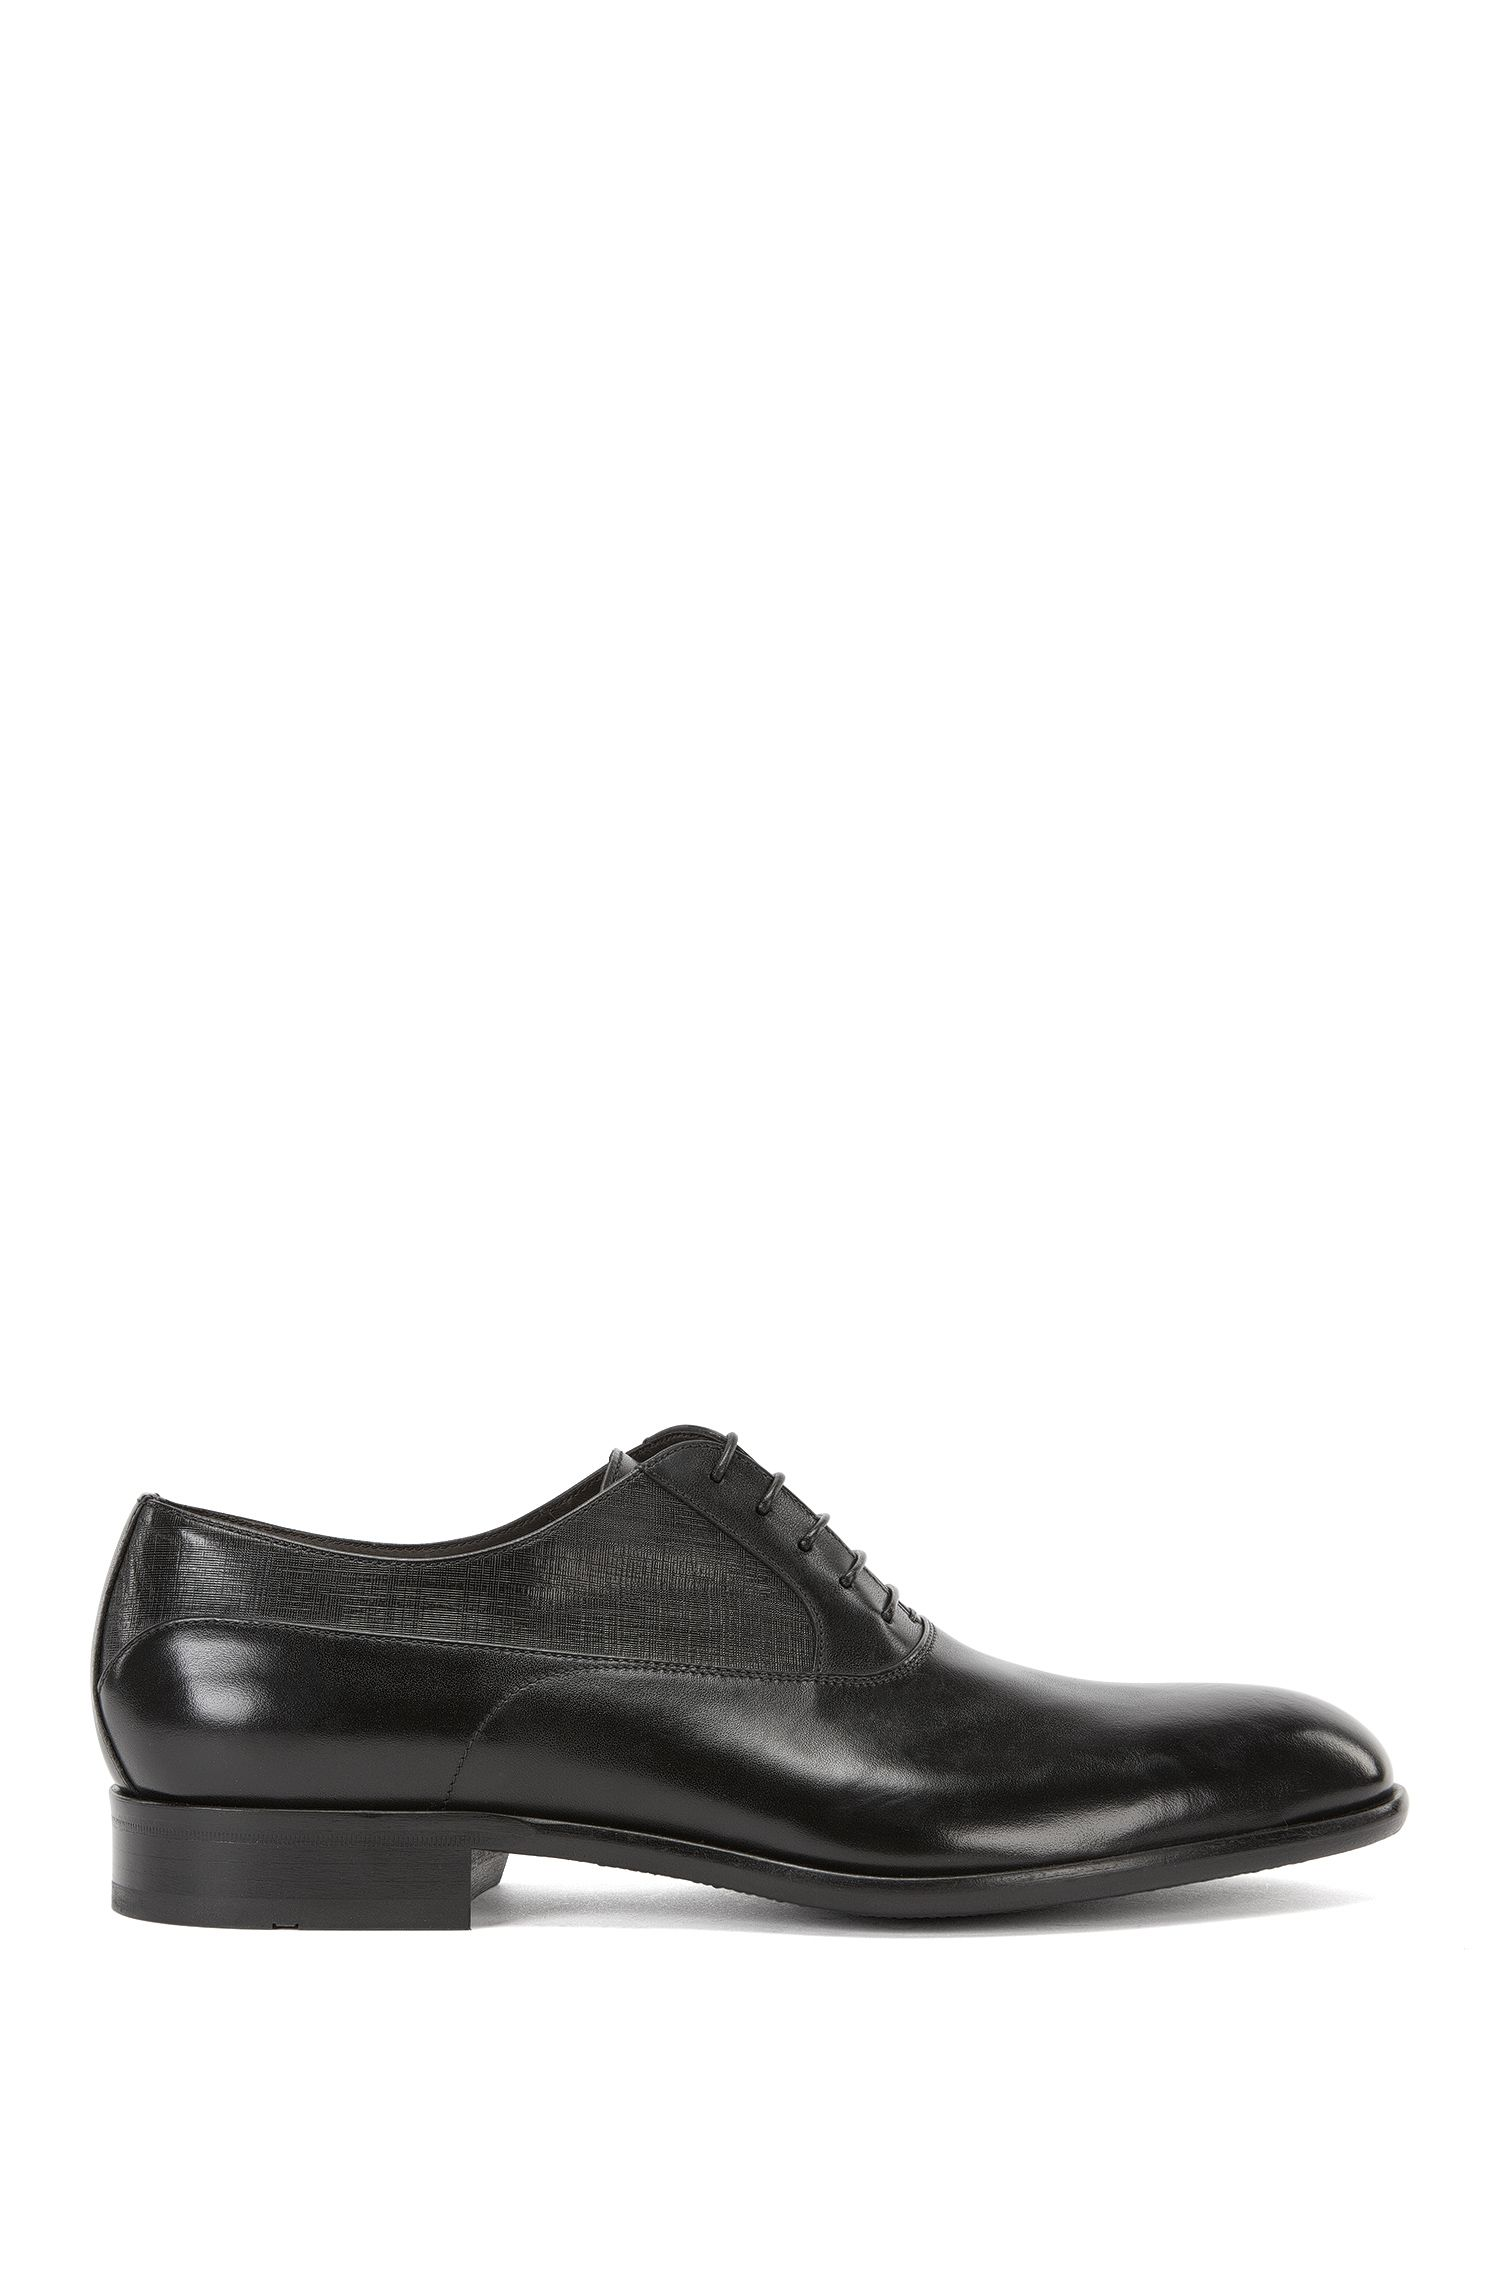 Oxford shoes with printed leather panels